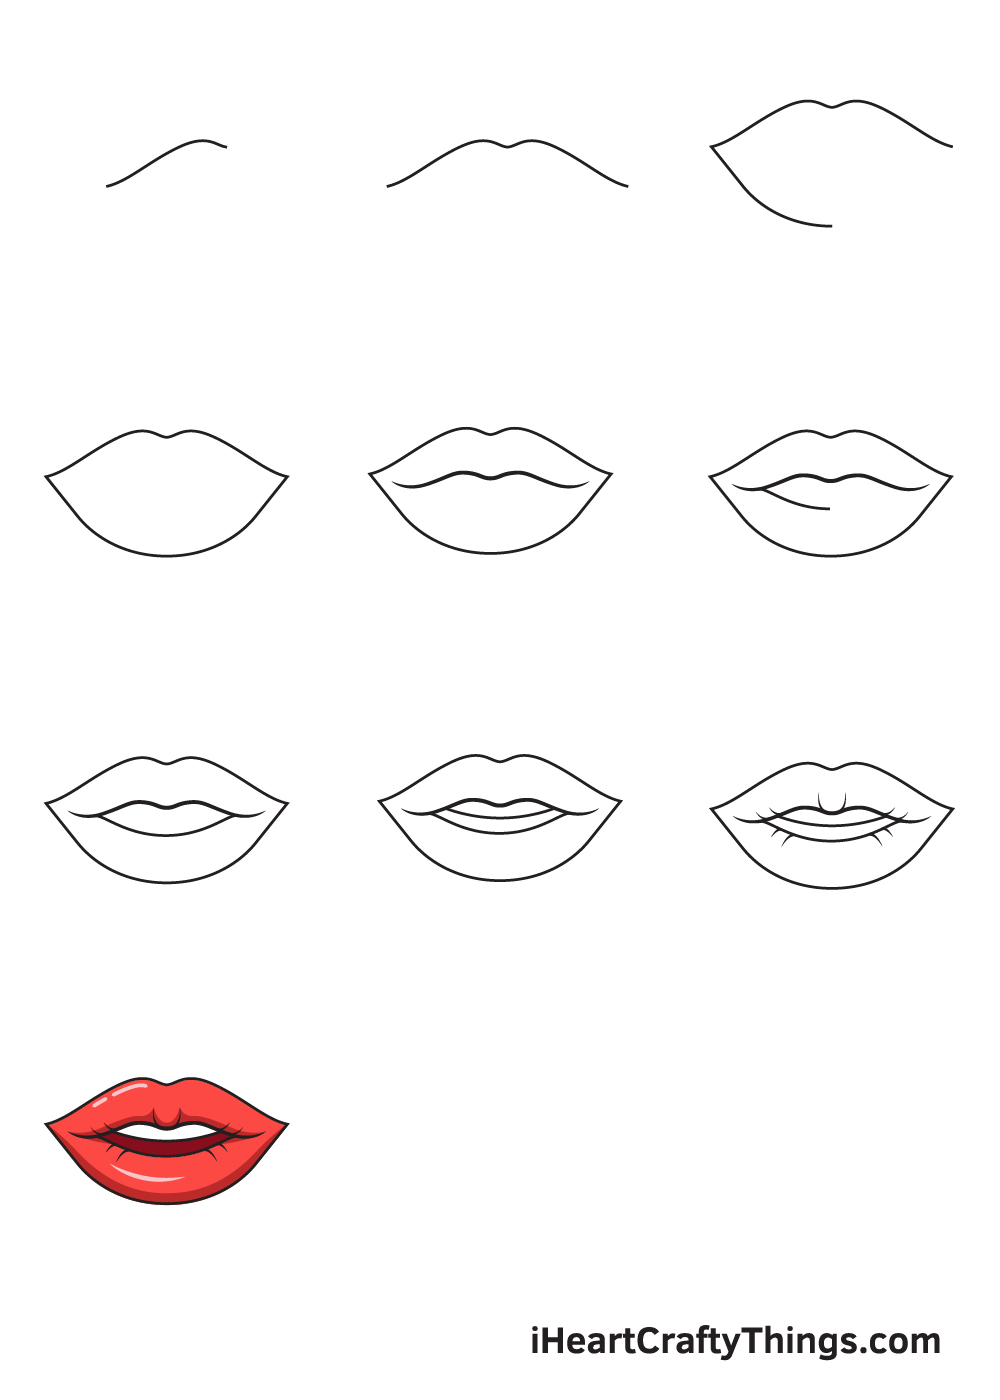 drawing lips in 9 easy steps